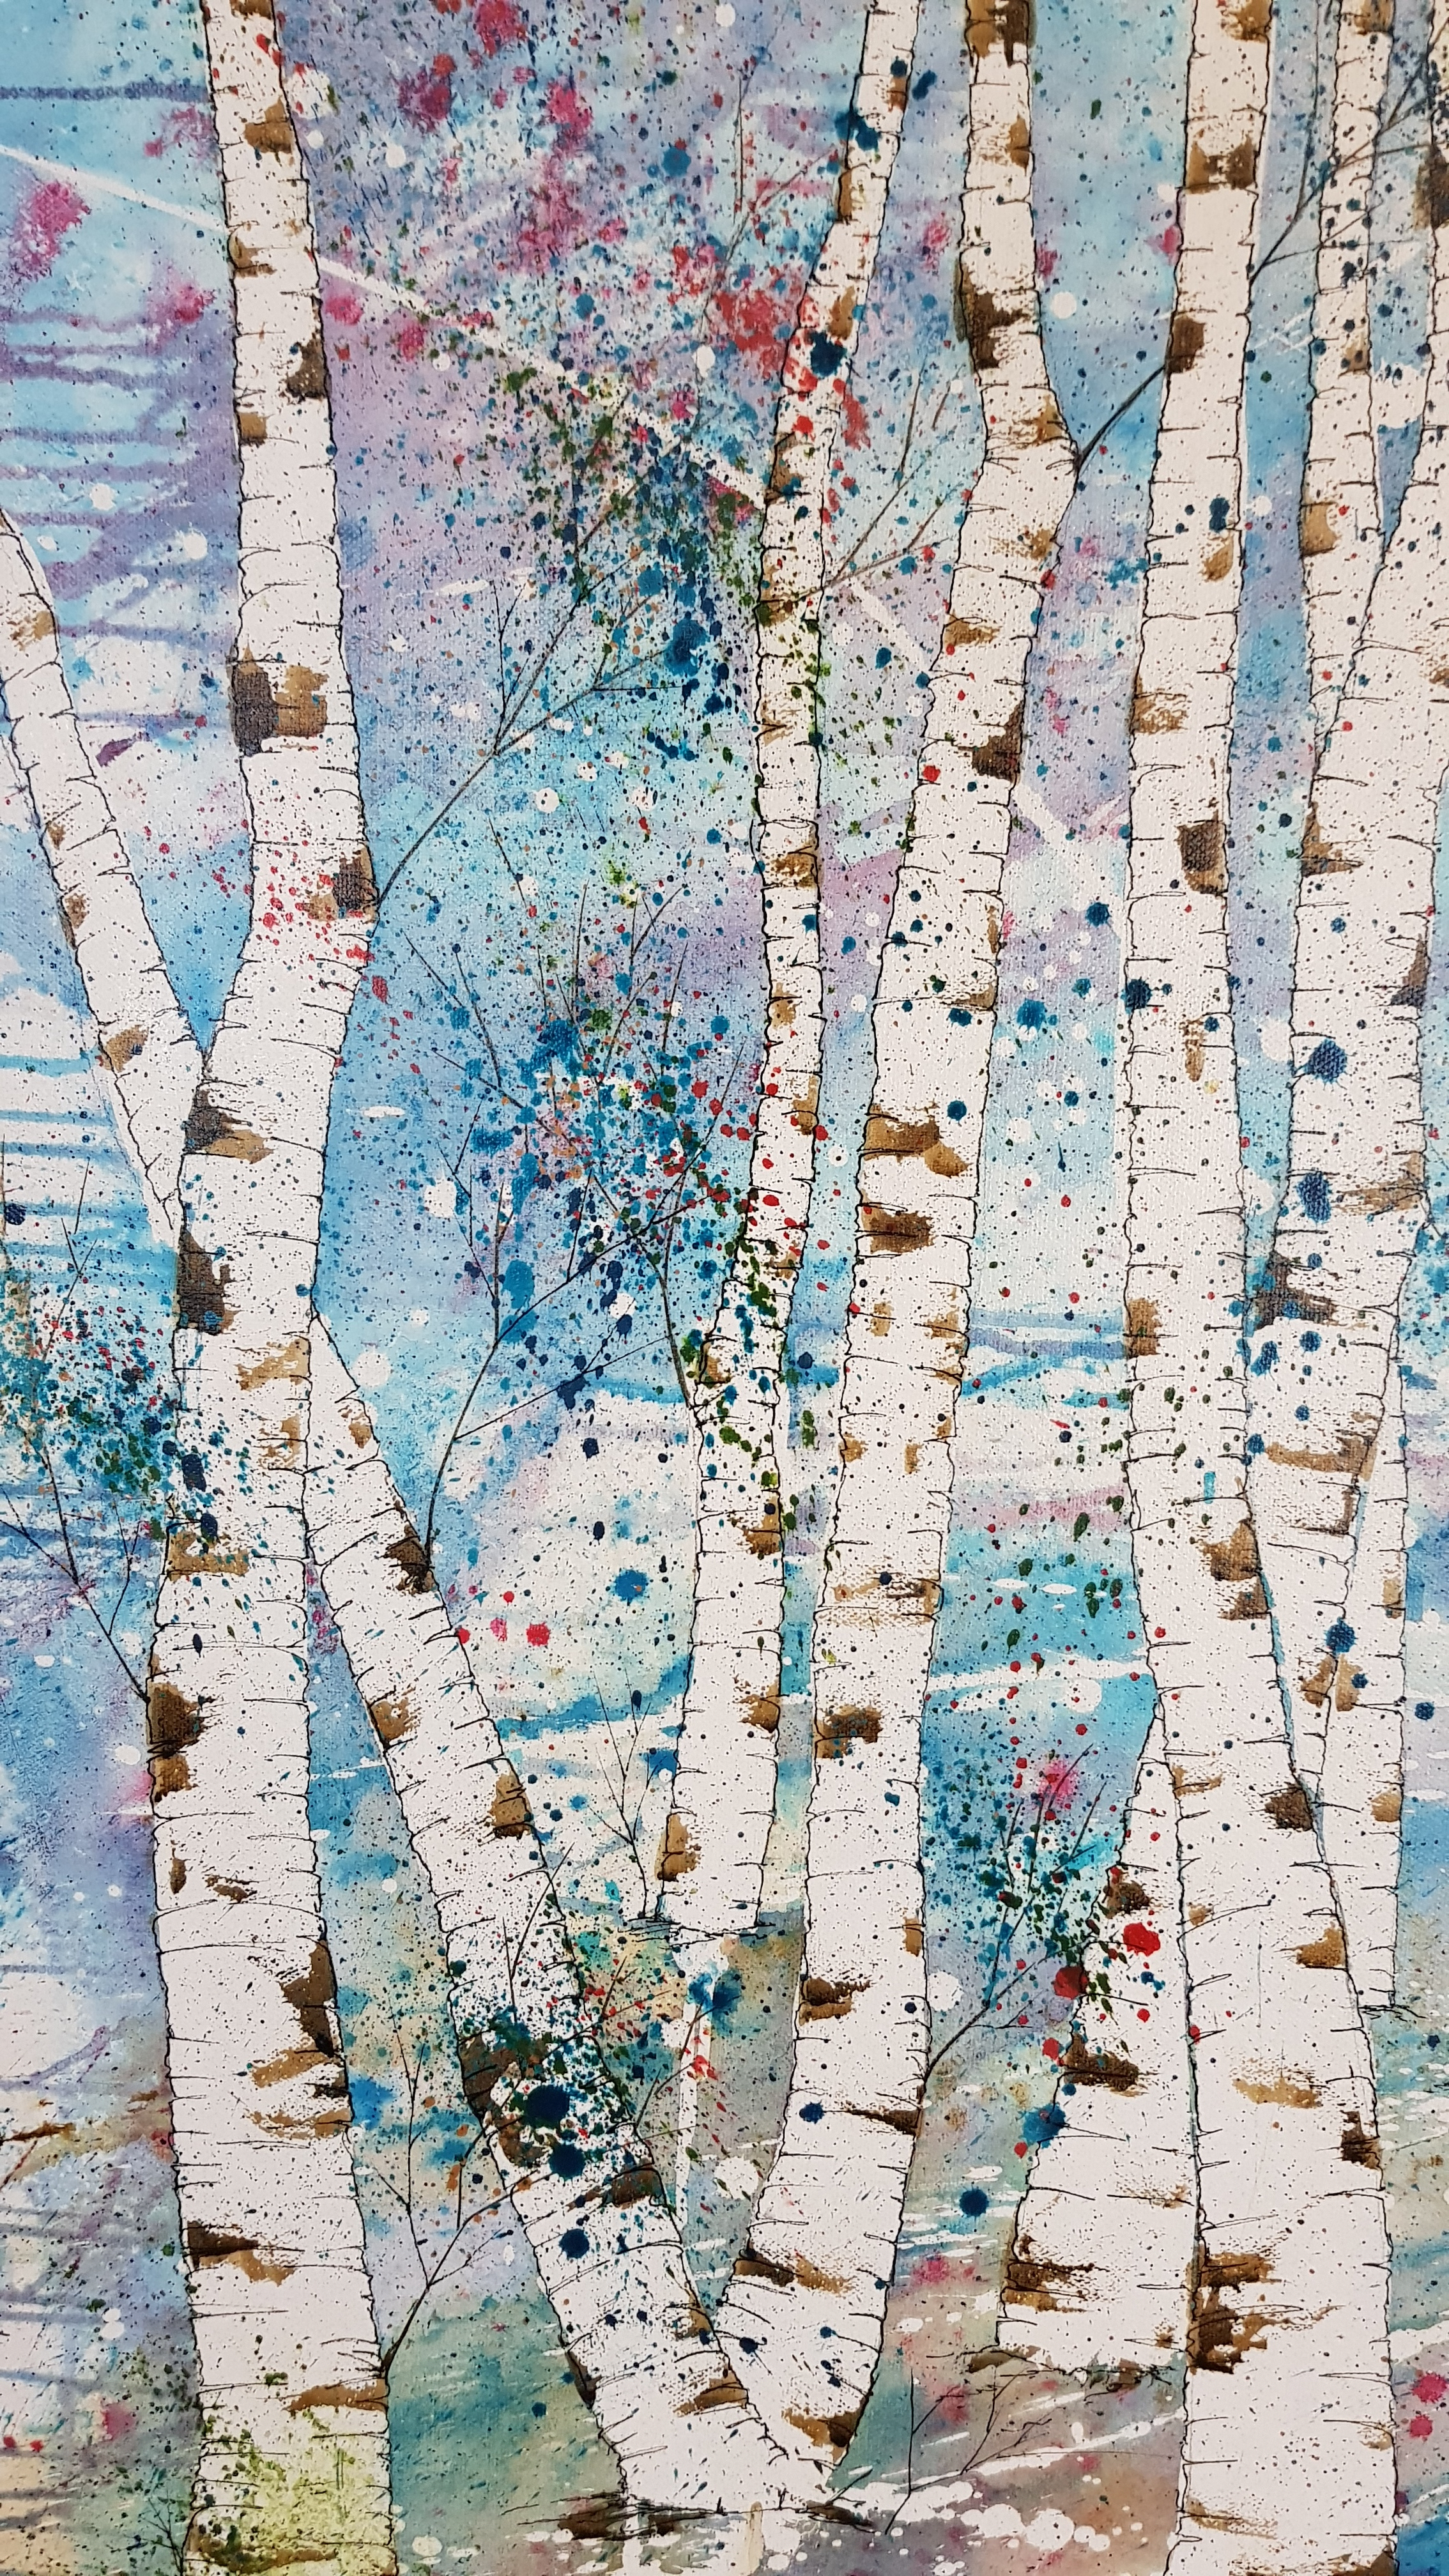 Detail of Silver Birches 100 x 150cm pen and ink